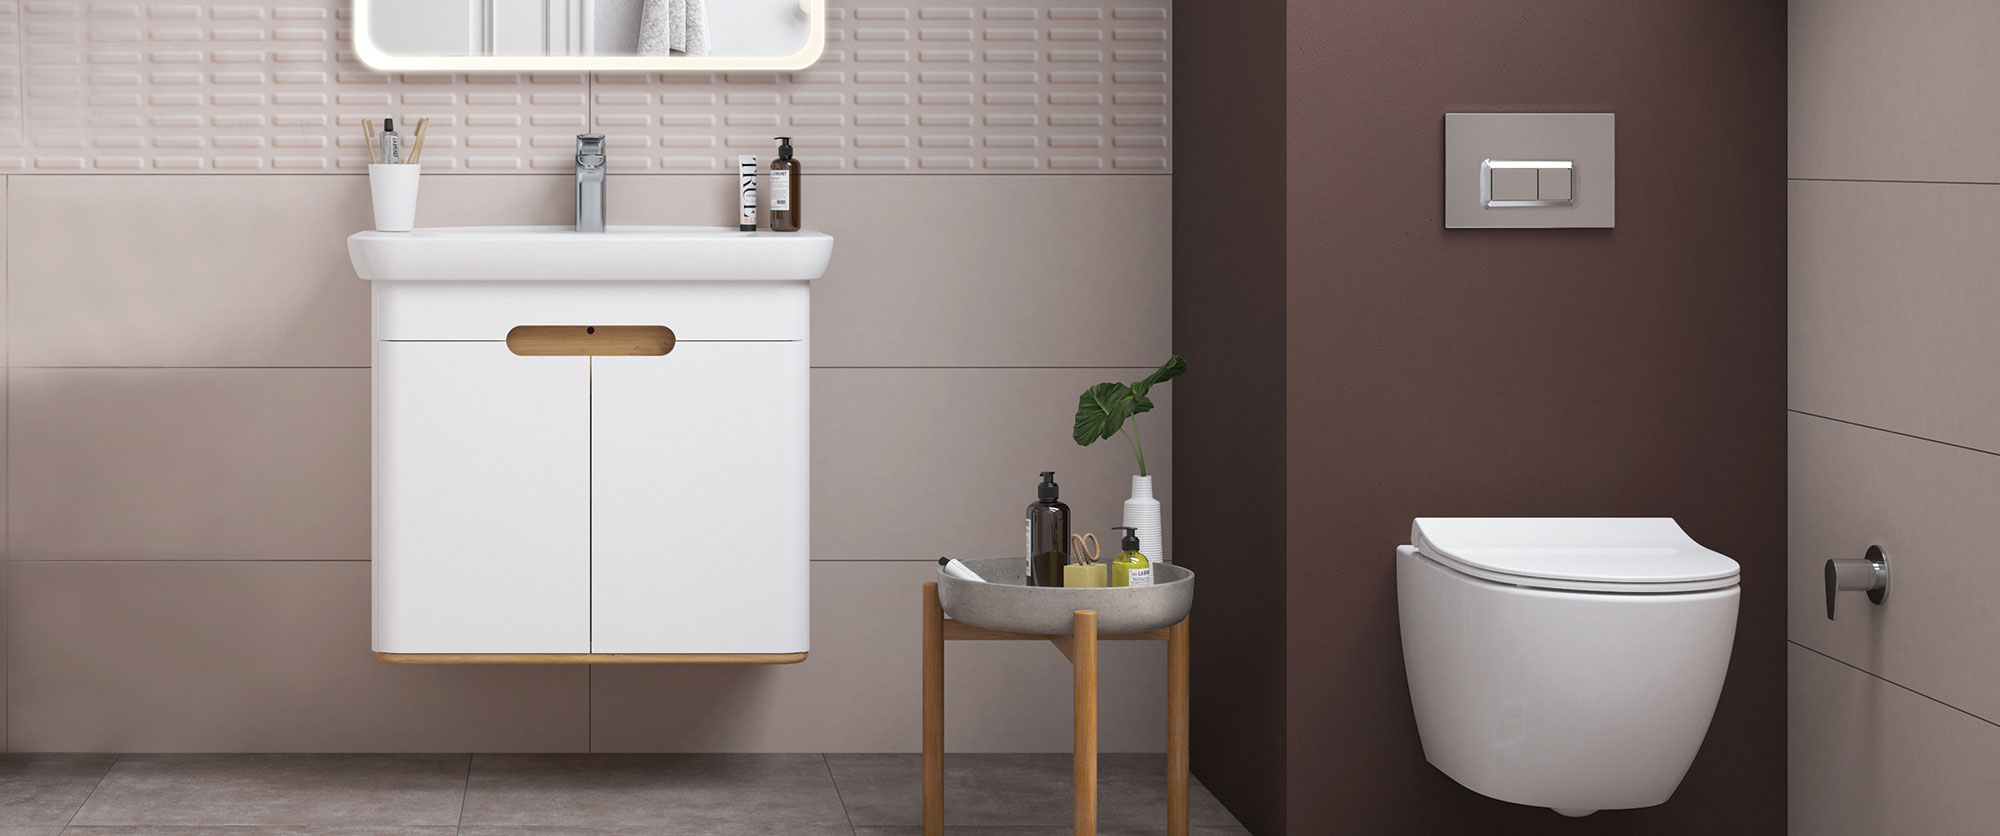 Aesthetic and comfortable designs from VitrA   VitrA Bathrooms India